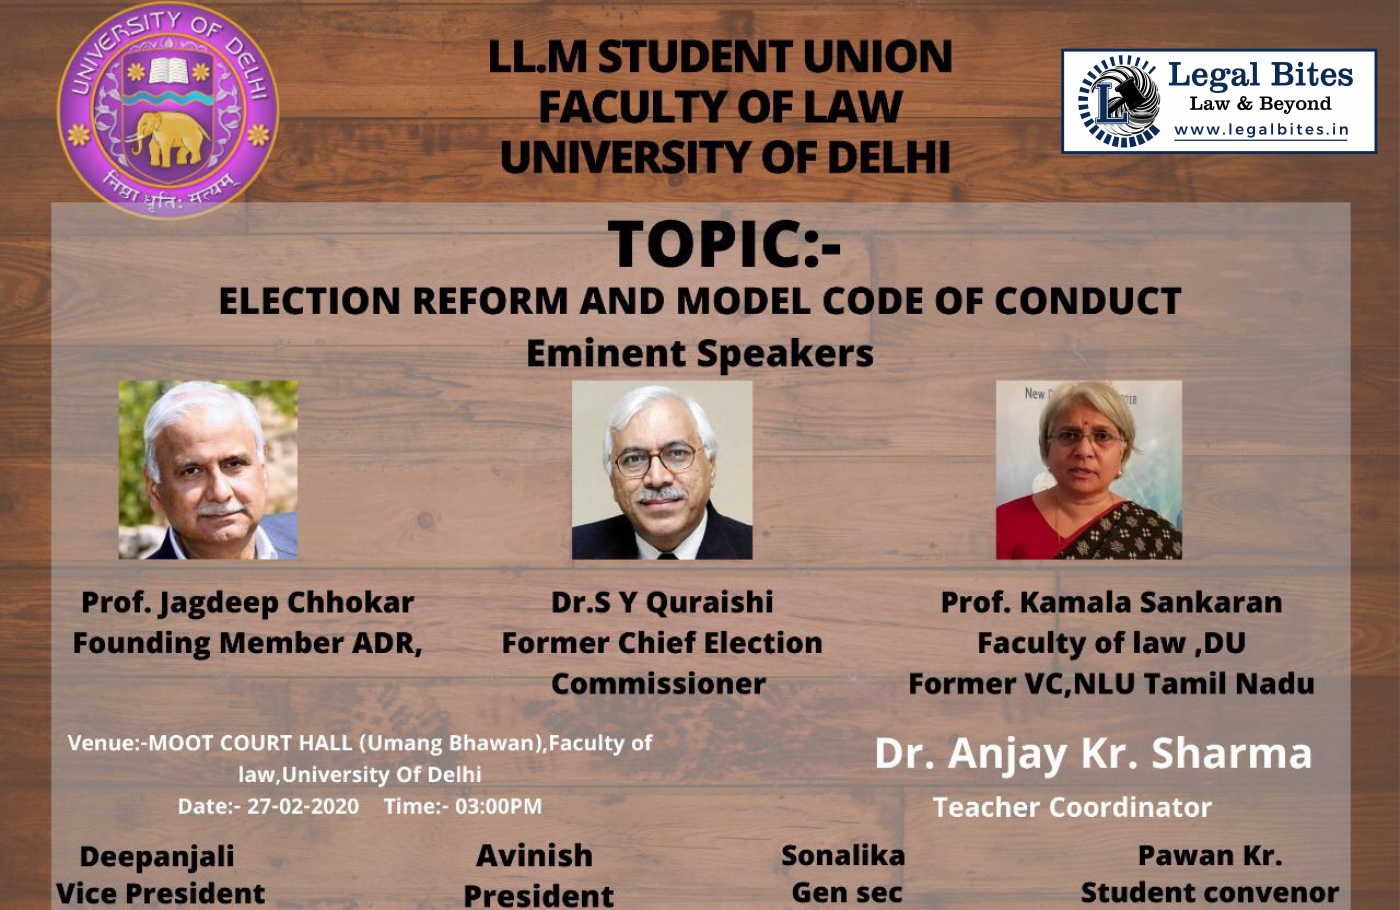 Lecture on Election Reform and Model Code of Conduct at Faculty of Law